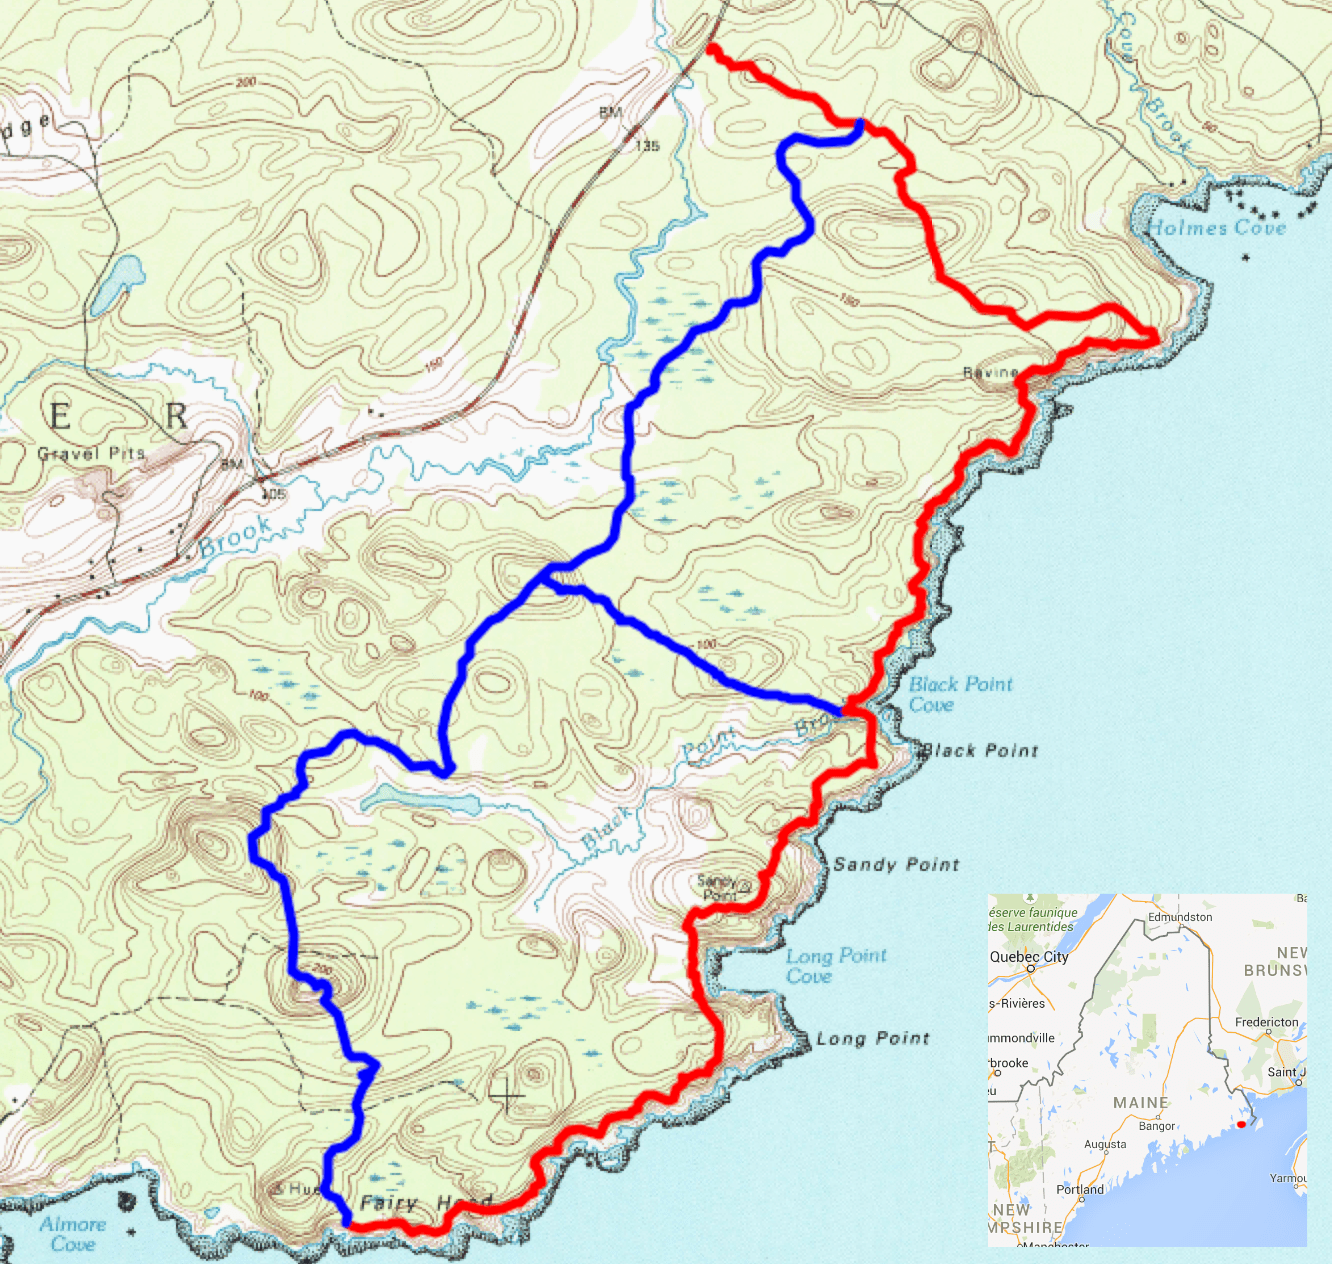 A map of the trail system at Maine's Cutler Coast.